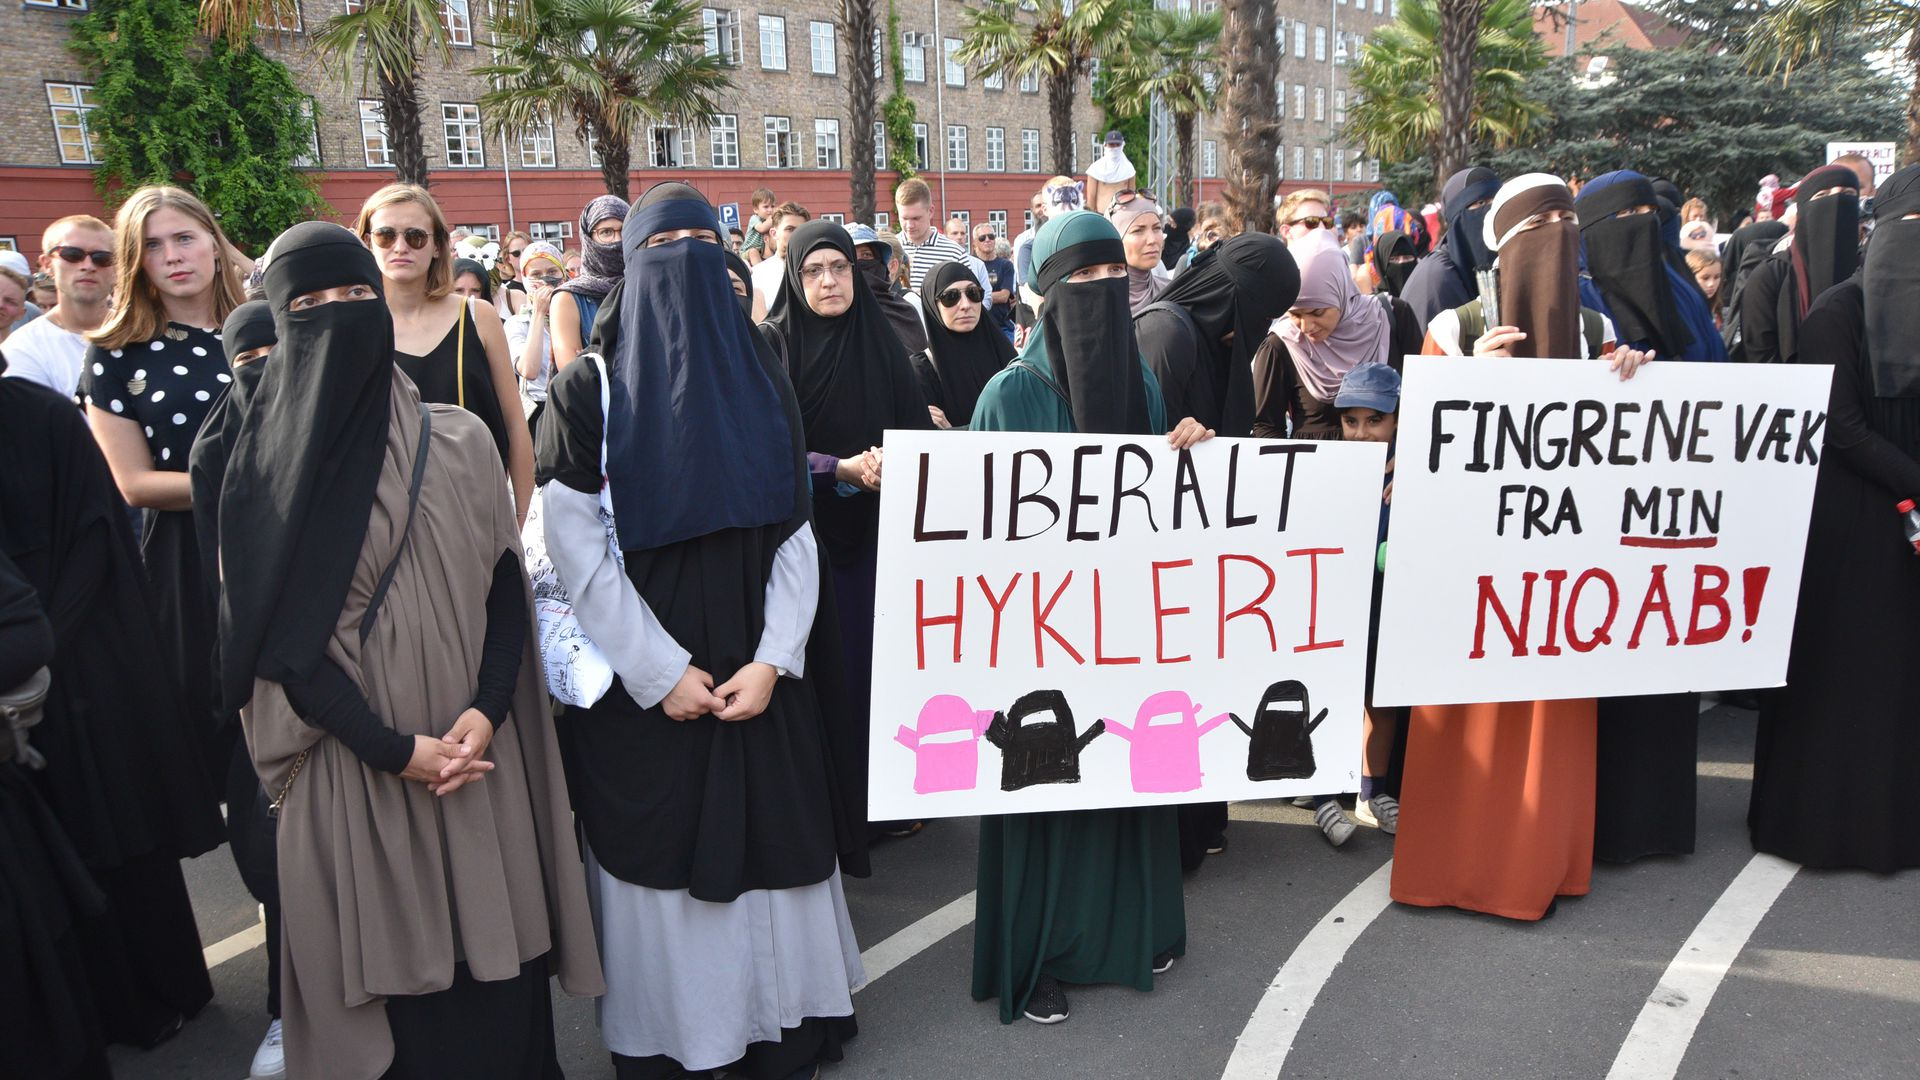 Veiled protestors hold signs in Copenhagen